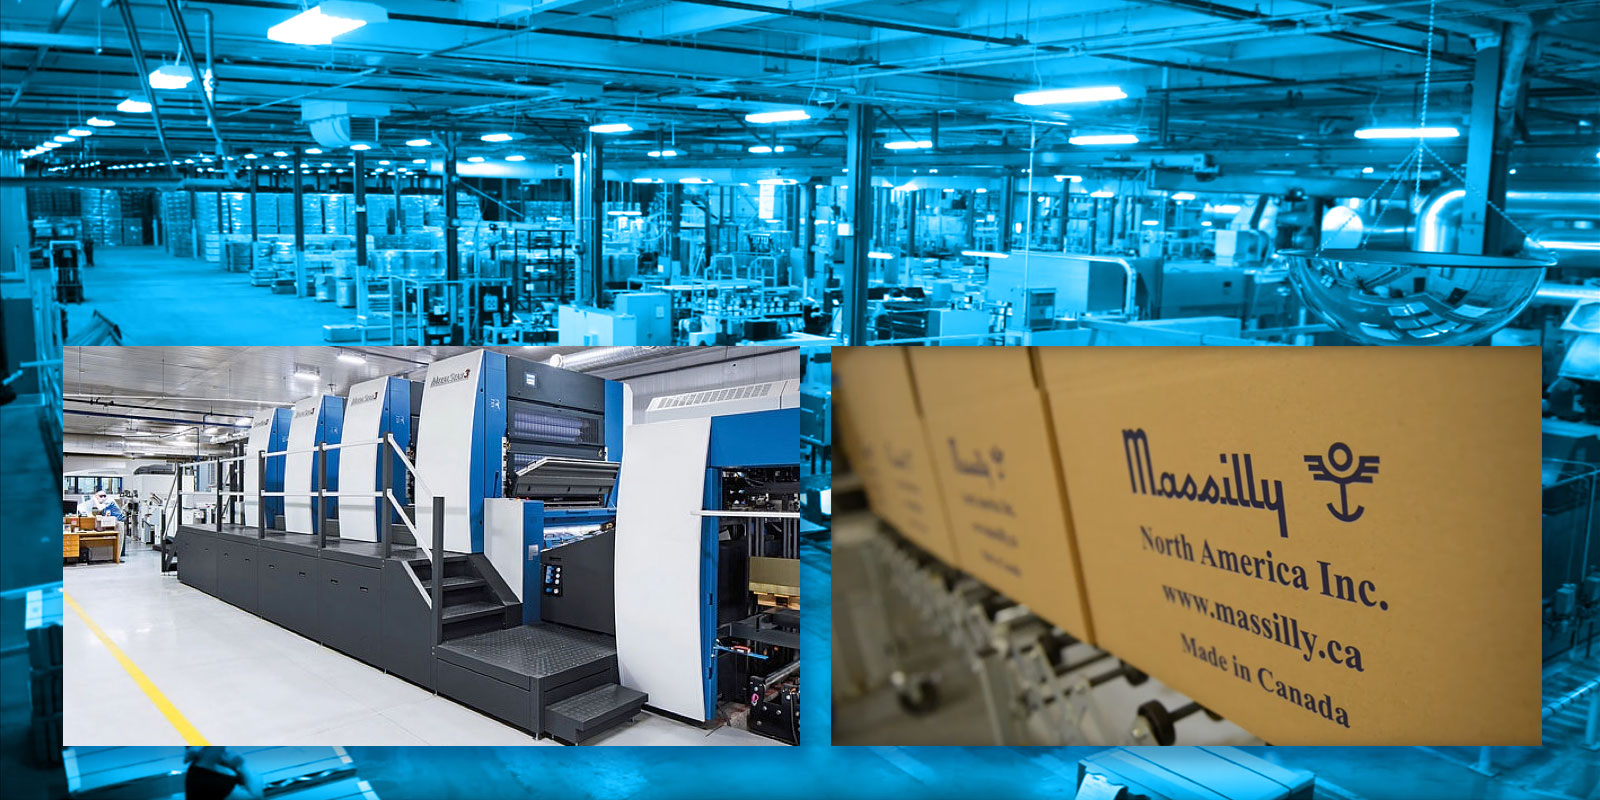 equipment, package, and machinery at Massilly North America